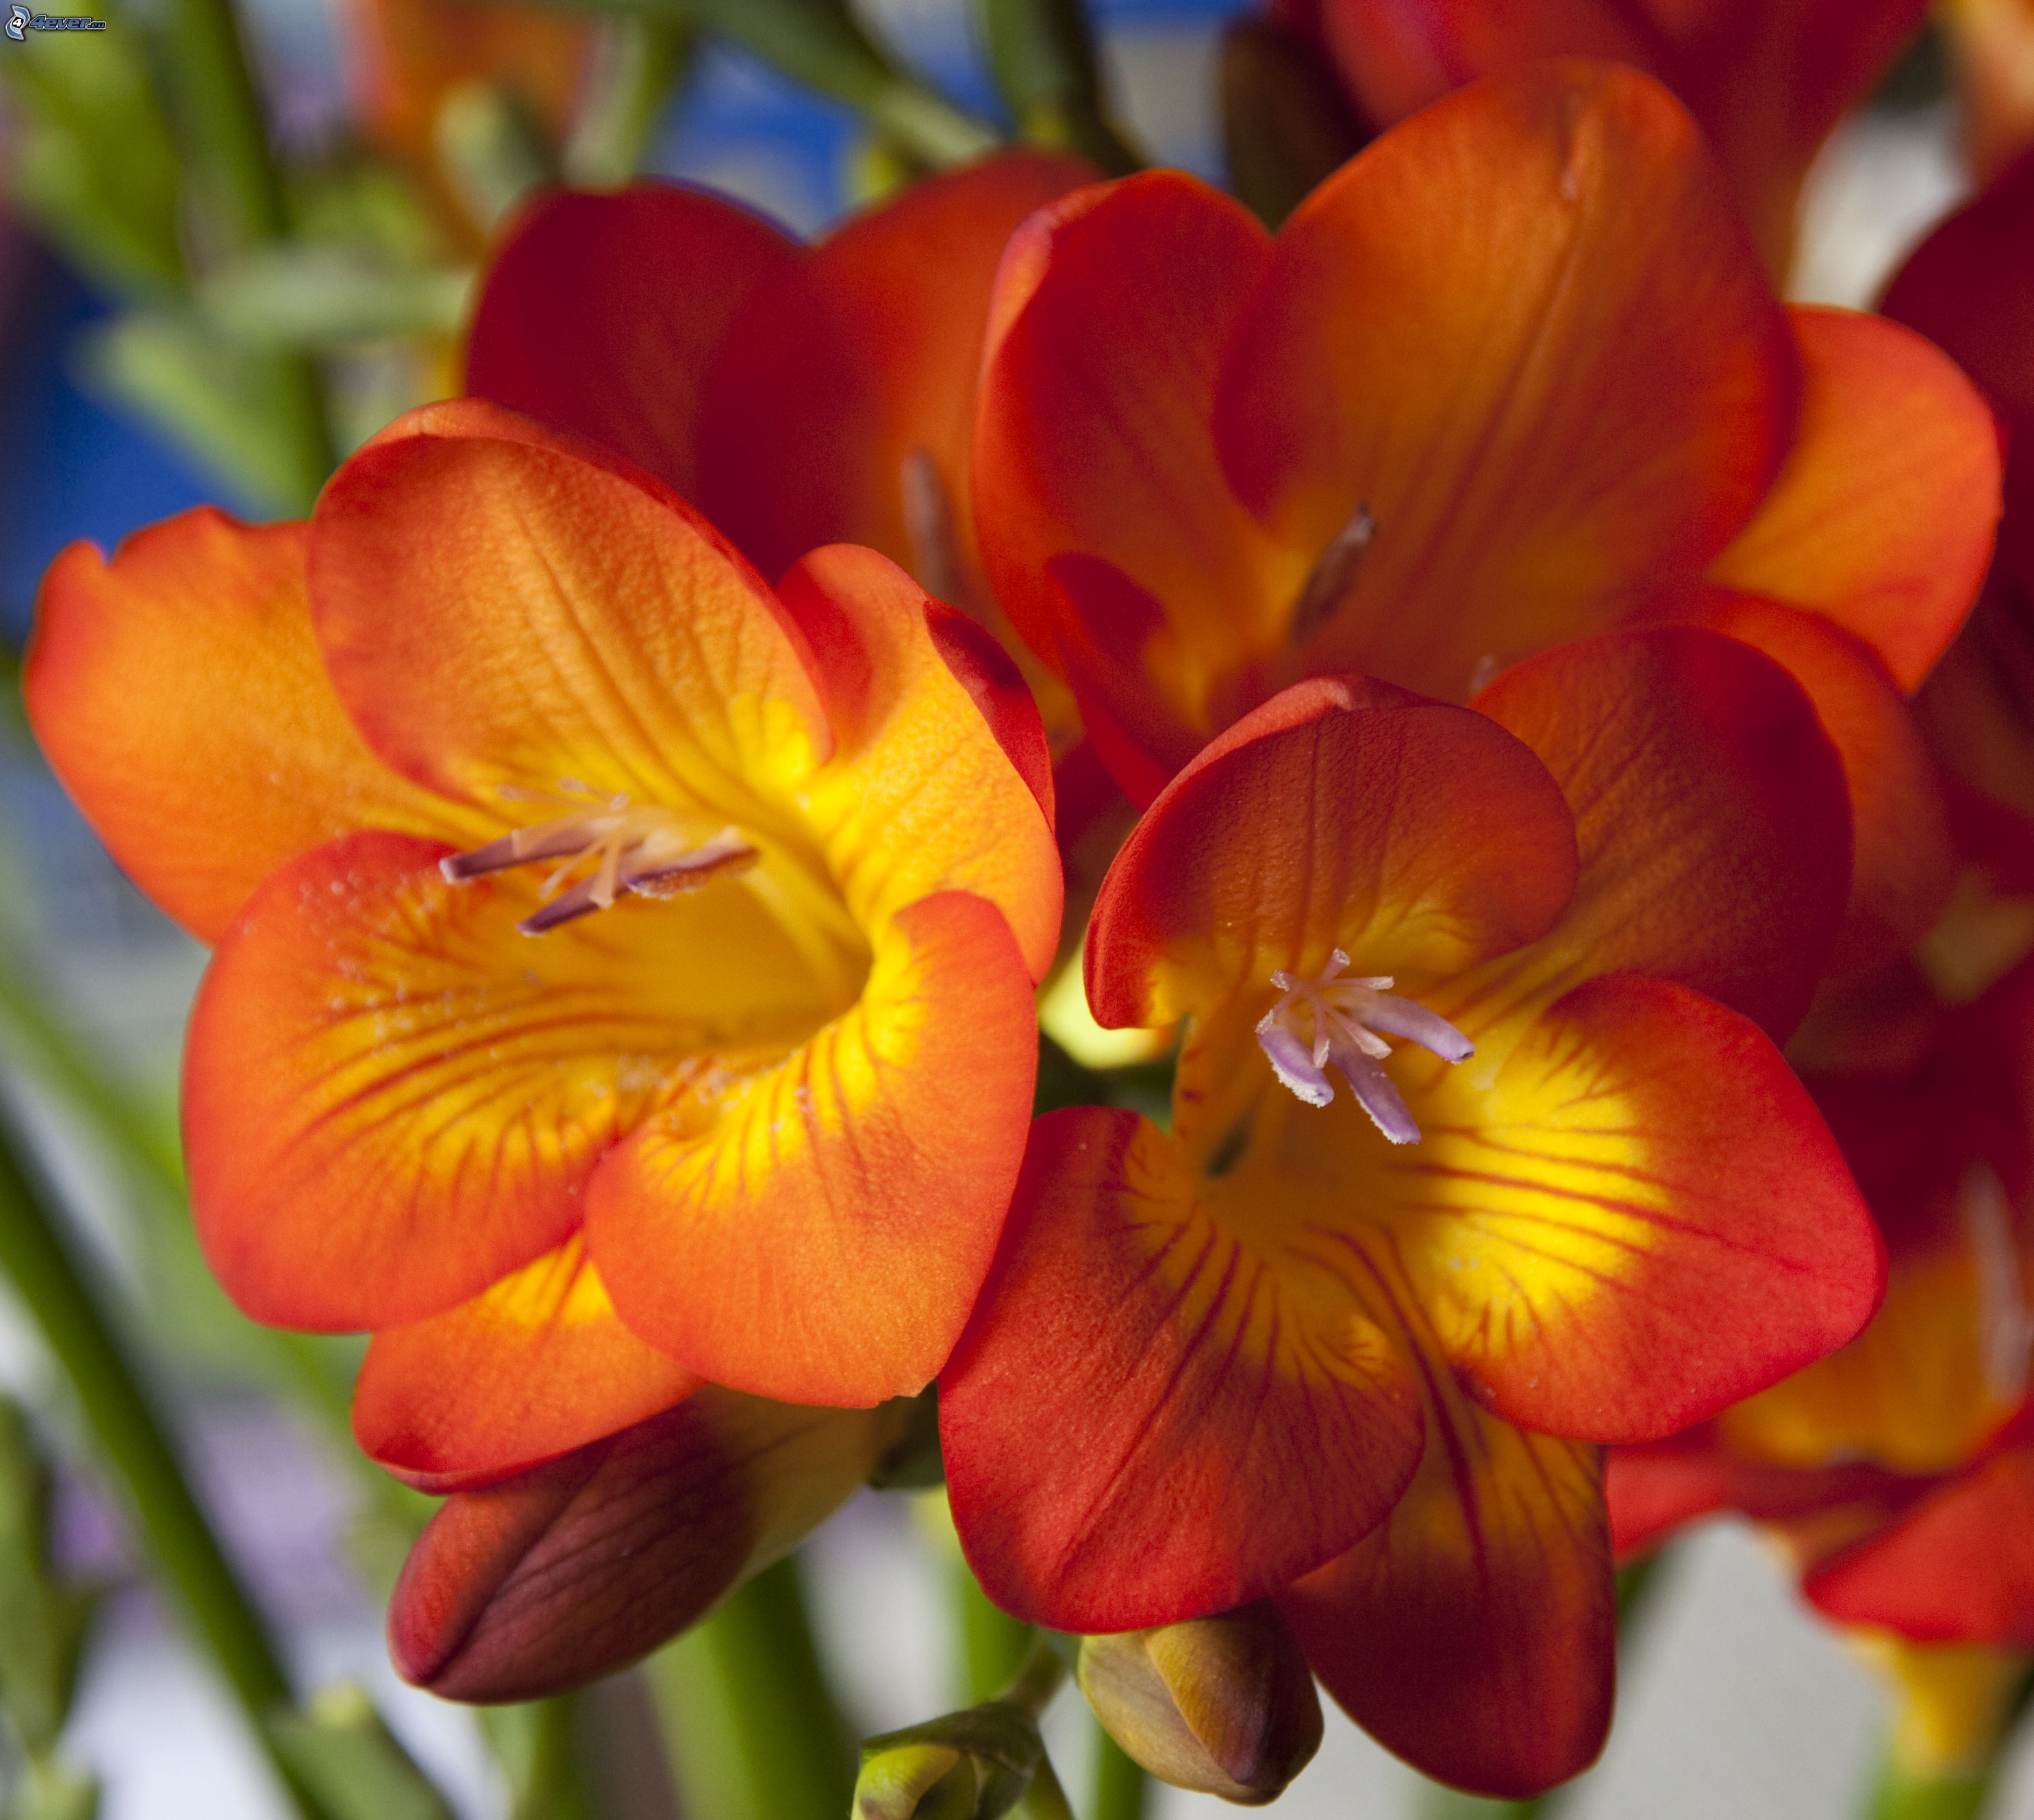 http://pictures.4ever.eu/data/download/nature/plants/freesia,-orange-flowers-237193.jpg